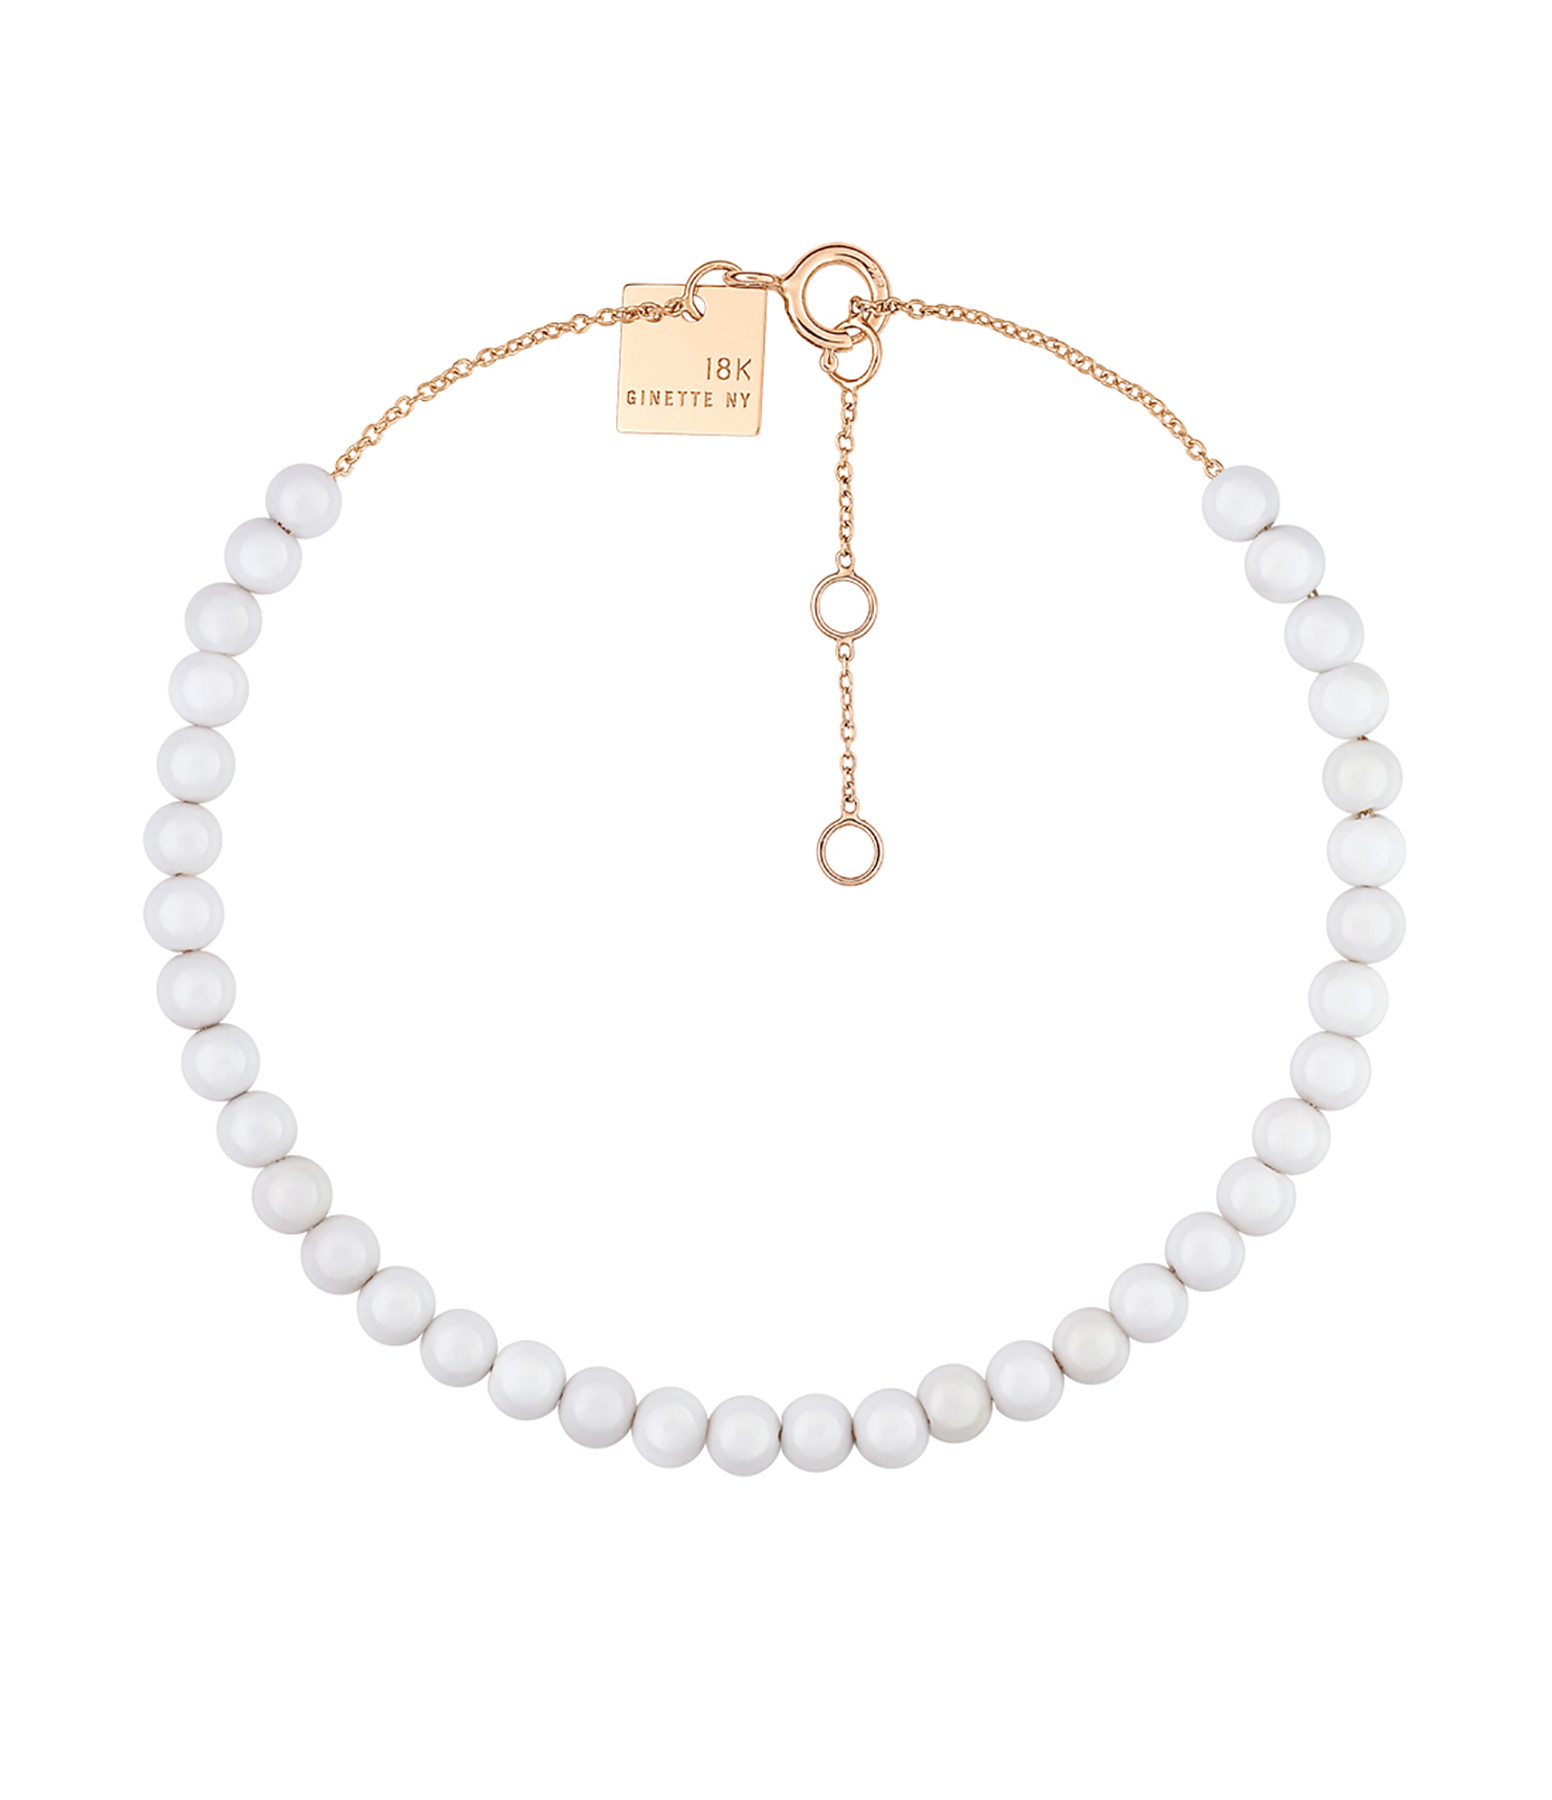 GINETTE NY - Bracelet Maria Mini Or Rose Agate Blanche